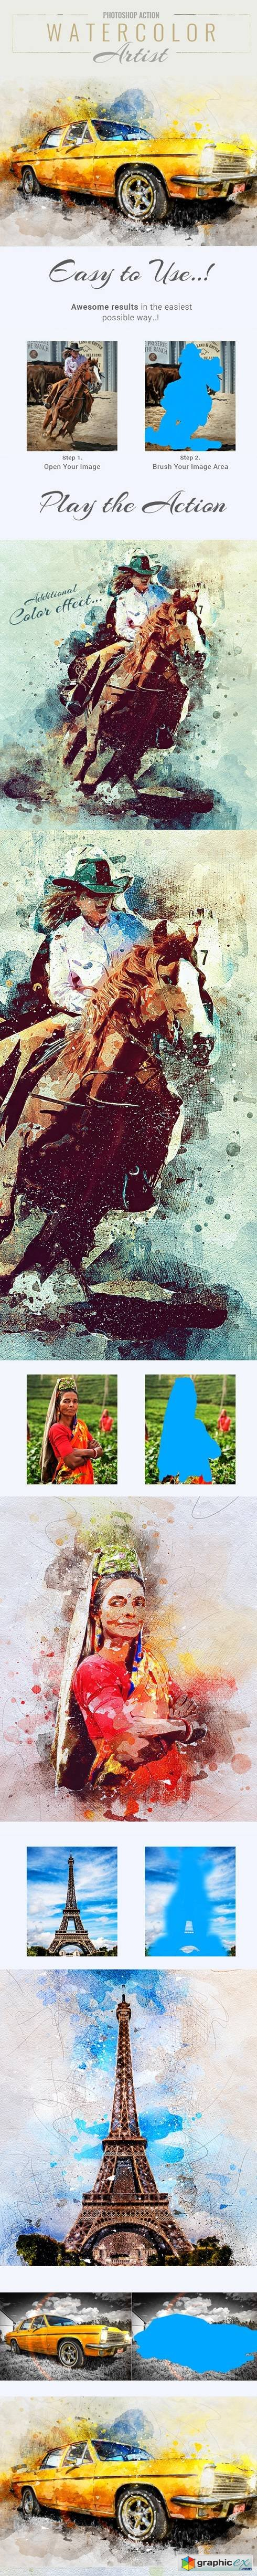 Graphicriver Watercolor Artist Photoshop Action